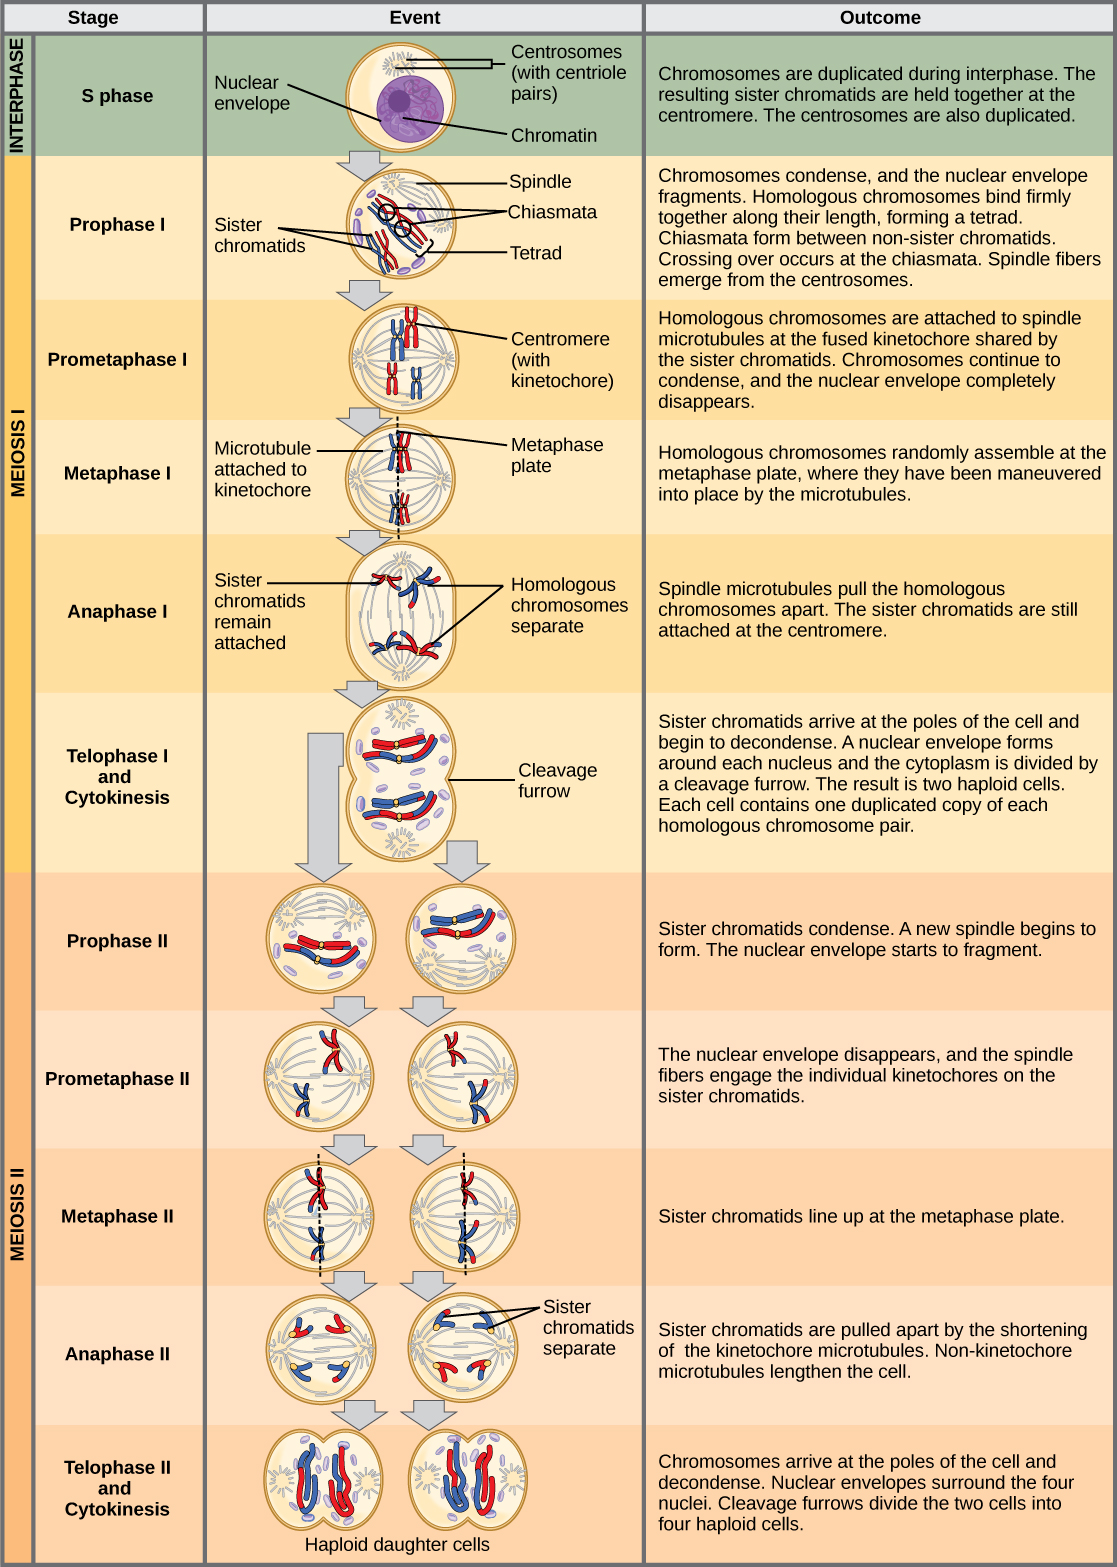 This illustration outlines the stages of meiosis. In interphase, before meiosis begins, the chromosomes are duplicated. Meiosis I then proceeds through several stages. In prophase I, the chromosomes begin to condense and the nuclear envelope fragments. Homologous pairs of chromosomes line up, and chiasmata form between them. Crossing over occurs at the chiasmata. Spindle fibers emerge from the centrosomes. In prometaphase I, homologous chromosomes attach to the spindle microtubules. In metaphase I, homologous chromosomes line up at the metaphase plate. In anaphase I, the spindle microtubules pull the homologous pairs of chromosomes apart. In telophase I and cytokinesis, the sister chromatids arrive at the poles of the cell and begin to decondense. The nuclear envelope begins to form again, and cell division occurs. Meiosis II then proceeds through several stages. In prophase II, the sister chromatids condense and the nuclear envelope fragments. A new spindle begins to form. In prometaphase II, the sister chromatids become attached to the kinetochore. In metaphase II, the sister chromatids line up at the metaphase plate. In anaphase II, the sister chromatids are pulled apart by the shortening spindles. In telophase II and cytokinesis, the nuclear envelope forms again and cell division occurs, resulting in four haploid daughter cells.